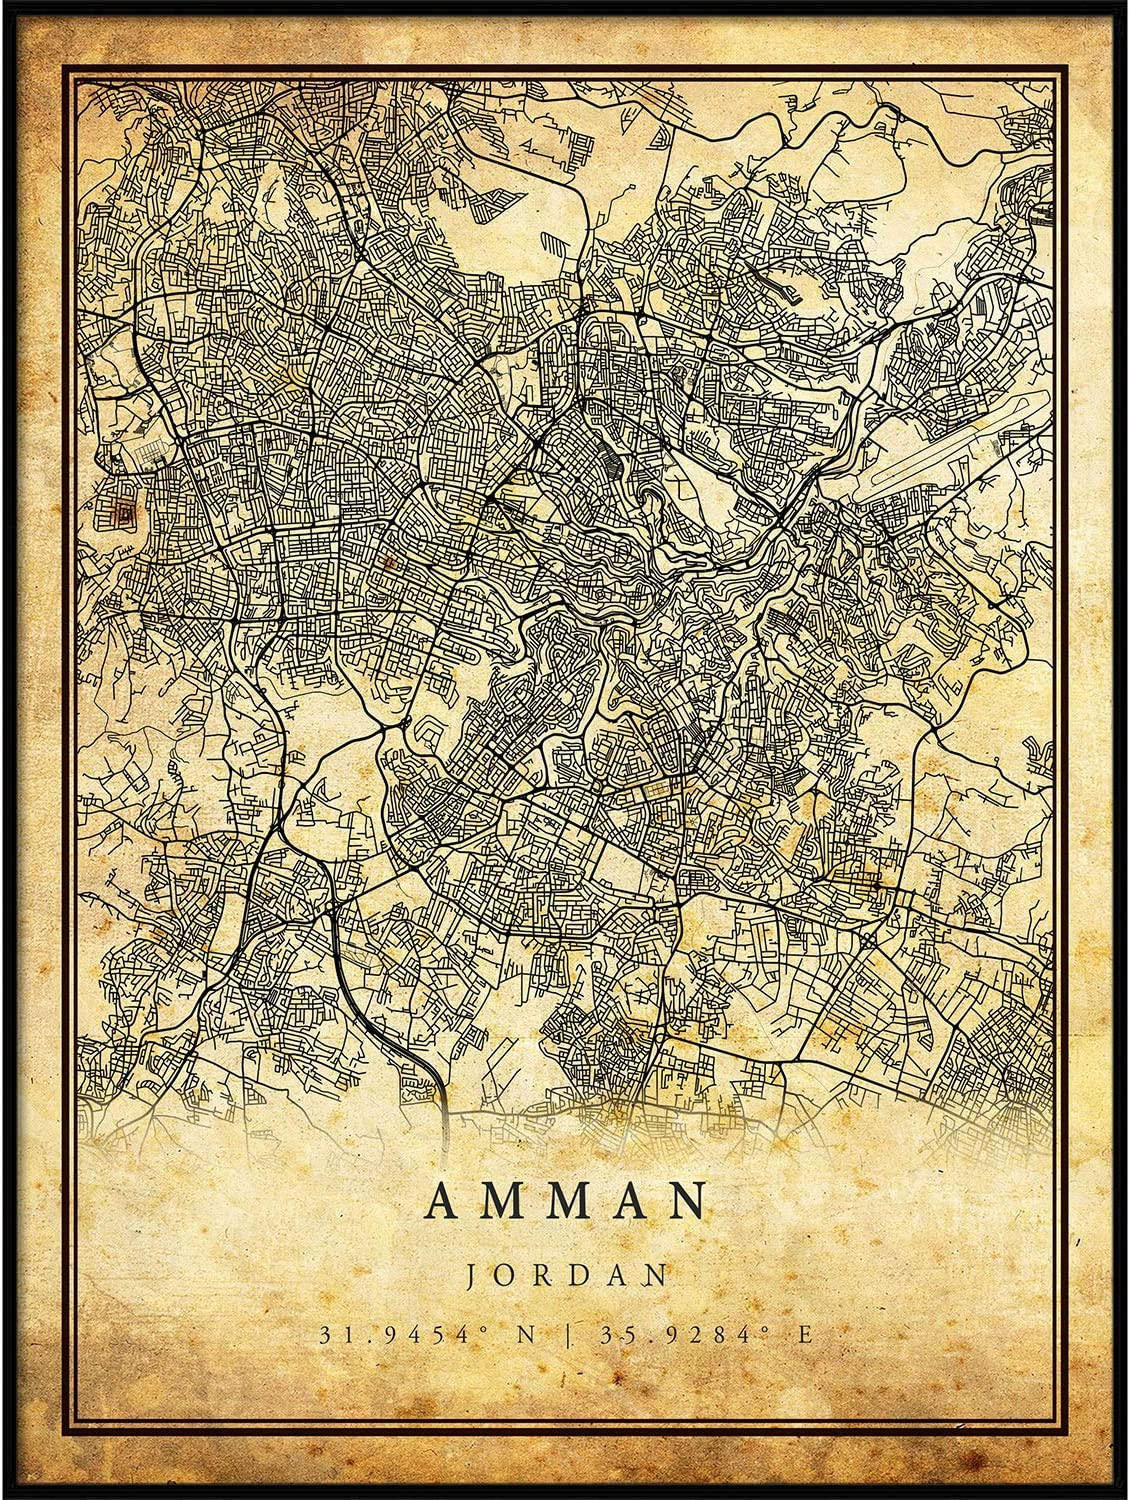 Amman map Special price for a limited time Vintage Style Ultra-Cheap Deals Poster Old City Prints Artwork Print